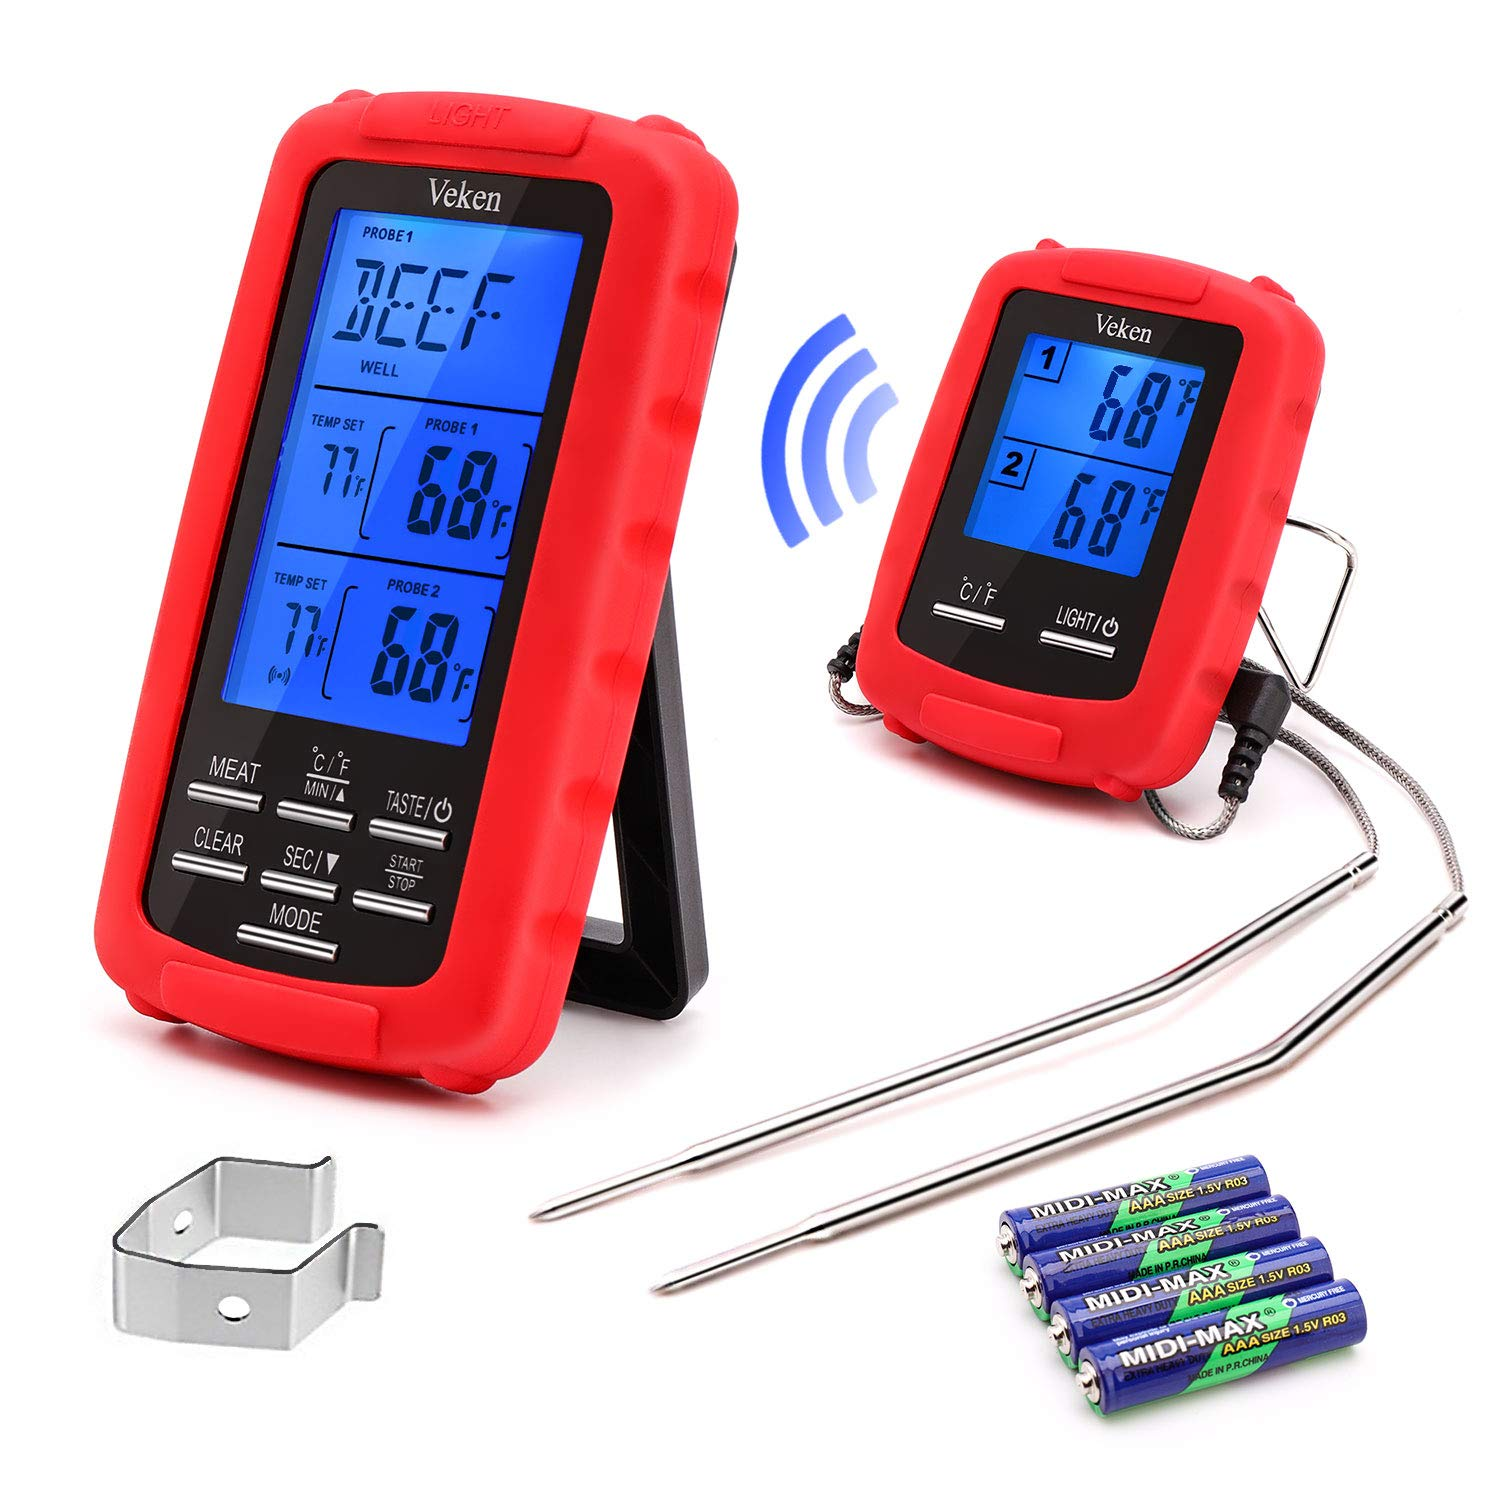 Veken Wireless Digital BBQ Meat Thermometer Remote Cooking Food Grill Thermometer with Dual Probes for Grilling Oven Smoker Thermometer Kitchen Tools, Battery Included (230 Feet), Red by Veken